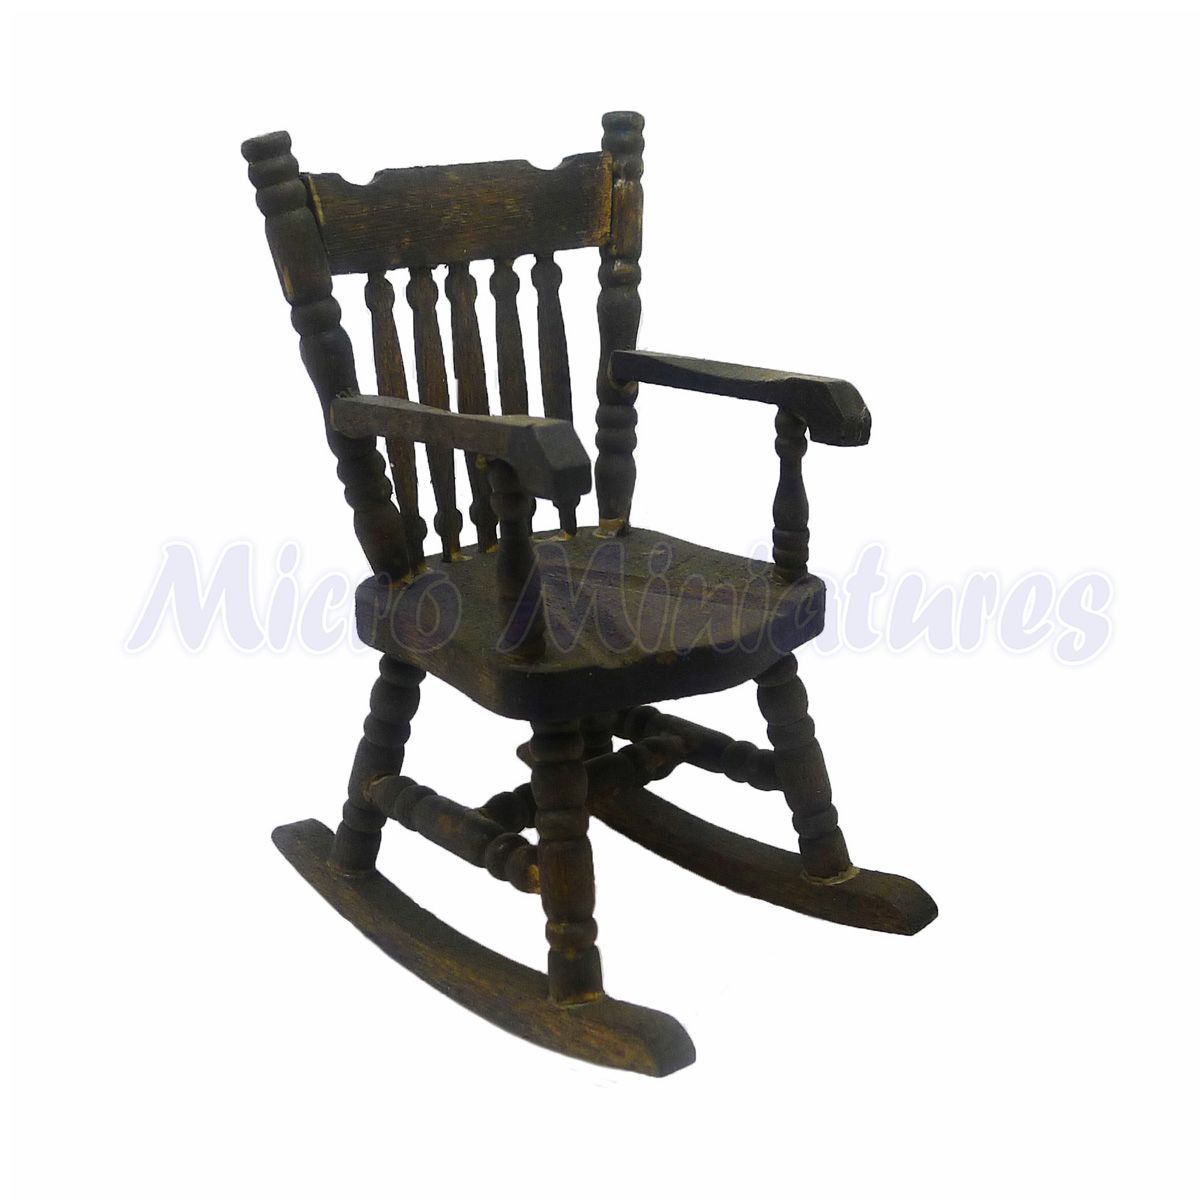 Fabulous Details About Dolls House Dark Oak Rocking Chair 1 12Th Scale 02878 Andrewgaddart Wooden Chair Designs For Living Room Andrewgaddartcom